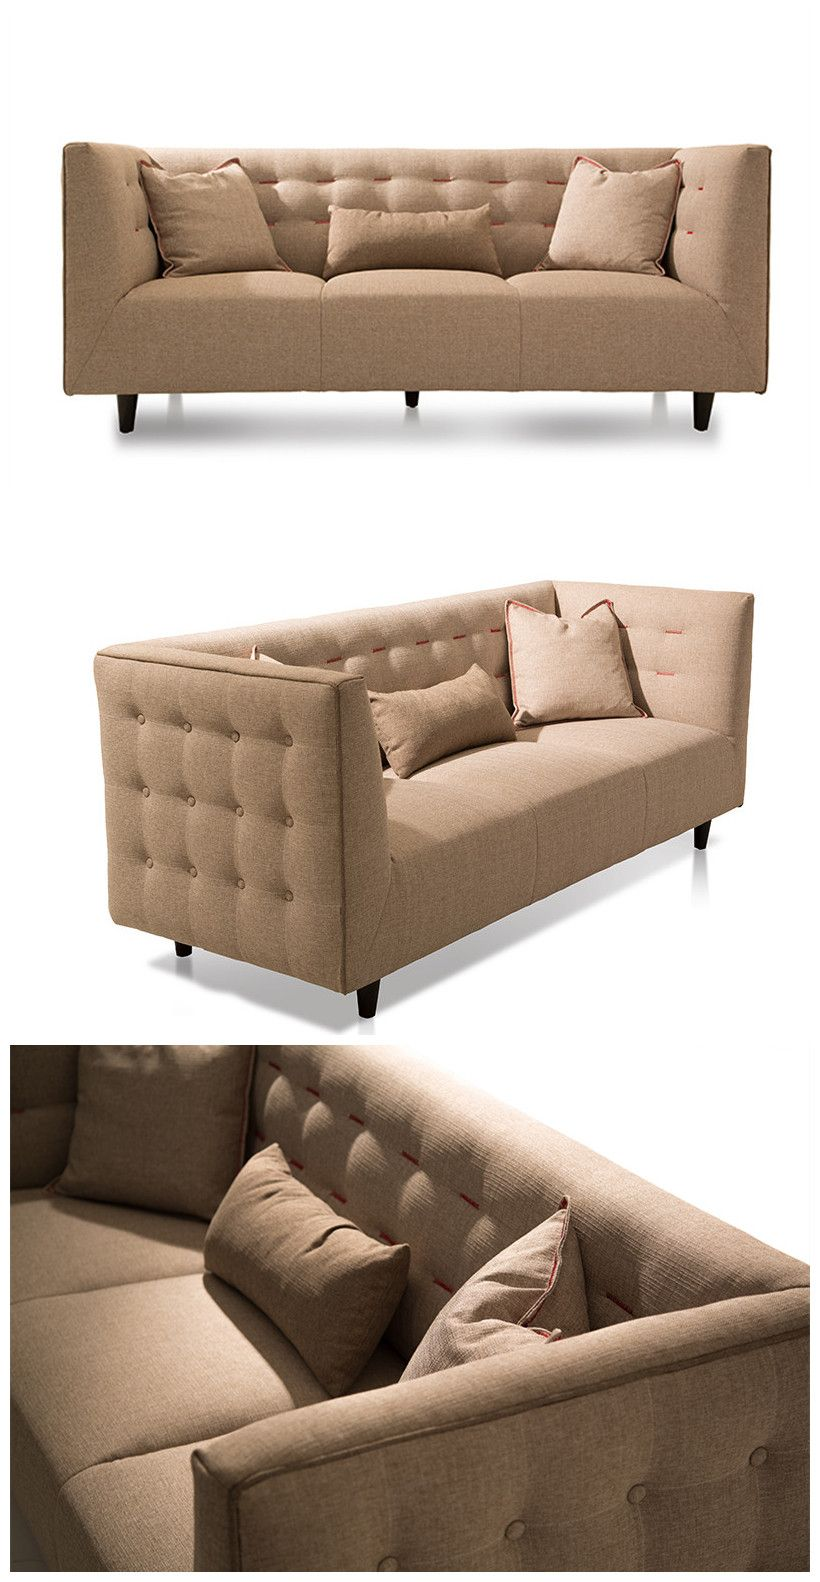 China Supplier Good Quality Box Tufted Modern Sofa Set Modern Sofa Set Sofa Set Sofa Set Designs